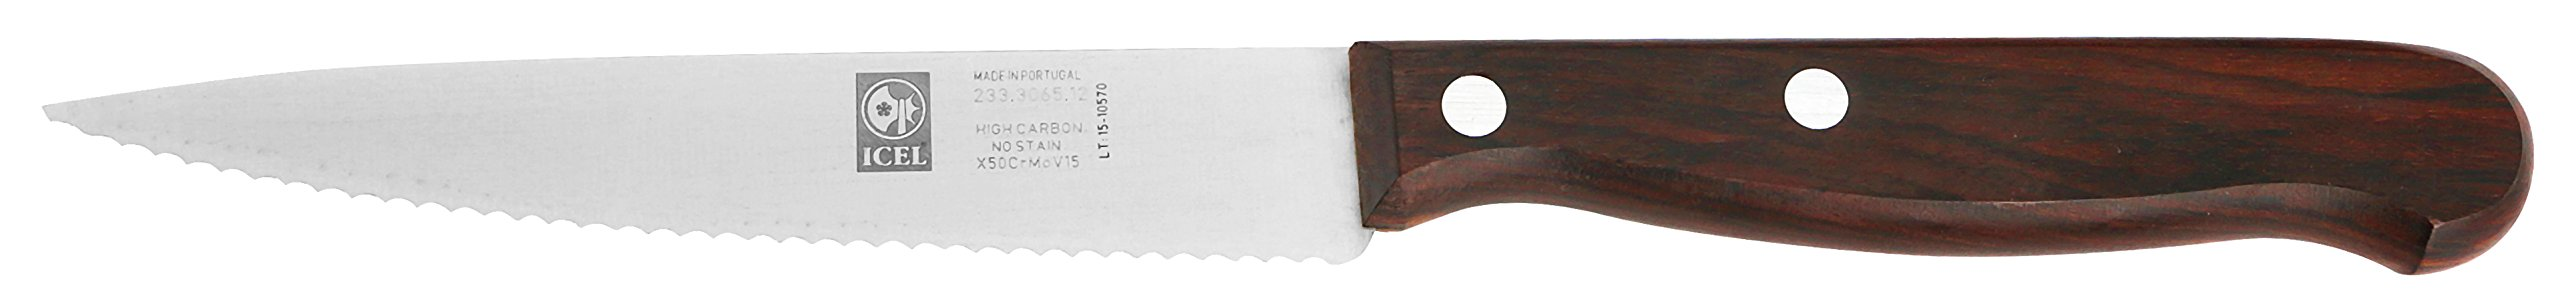 ICEL Serrated Steak Knife, 4-3/4-inch Pointed Tip, High Carbon Stainless Steel Blade, Rosewood Handle.